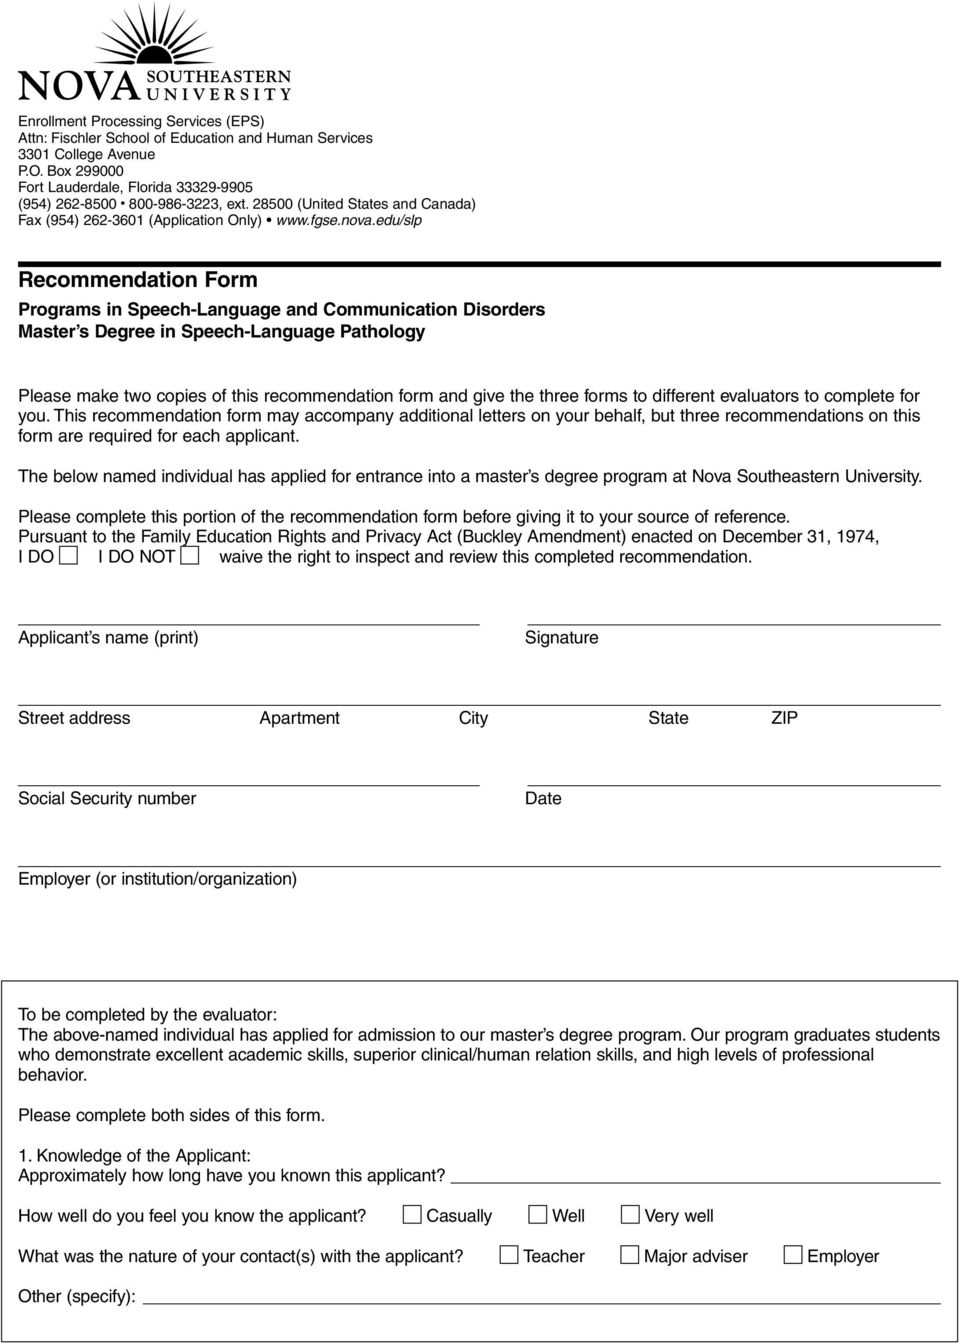 forms to different evaluators to complete for you. This recommendation form may accompany additional letters on your behalf, but three recommendations on this form are required for each applicant.